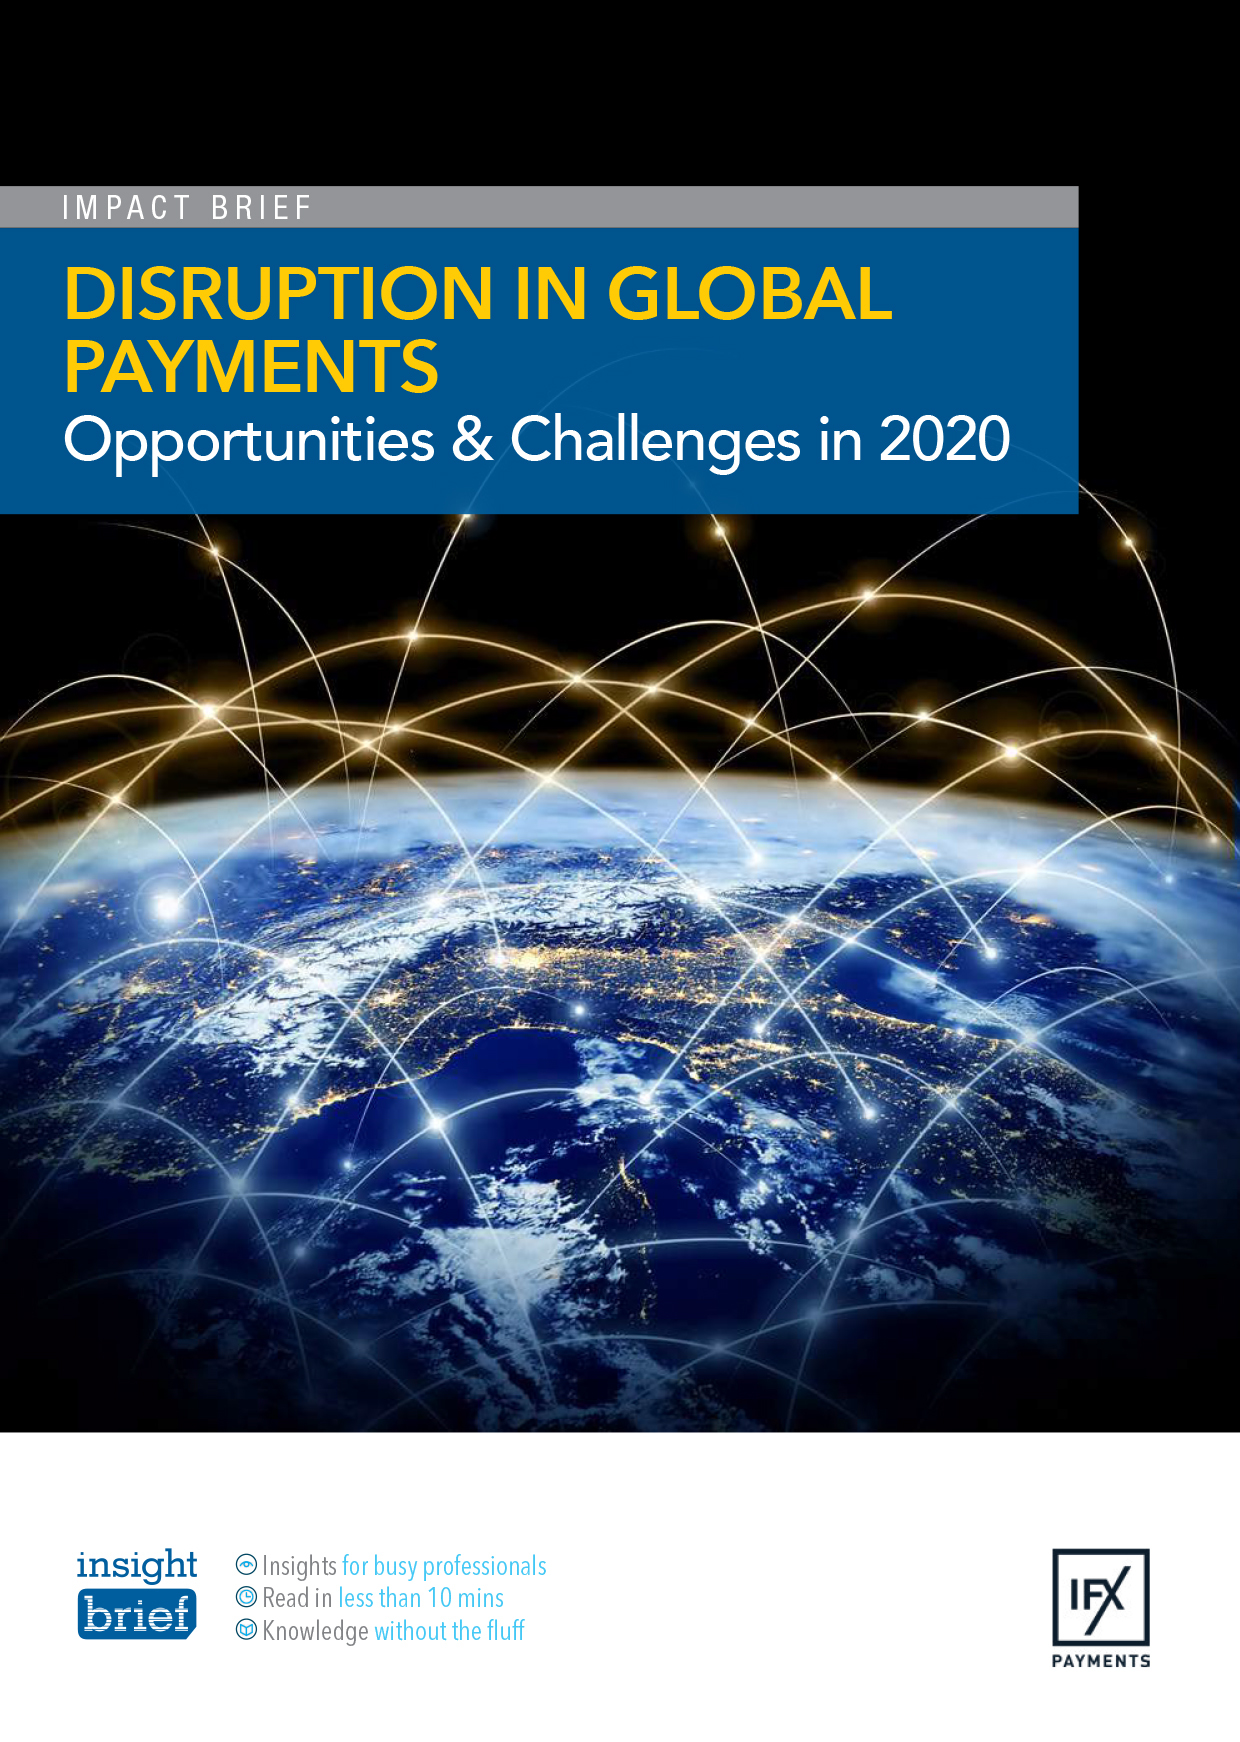 Disruption in Global Payments  – Opportunities & Challenges in 2020